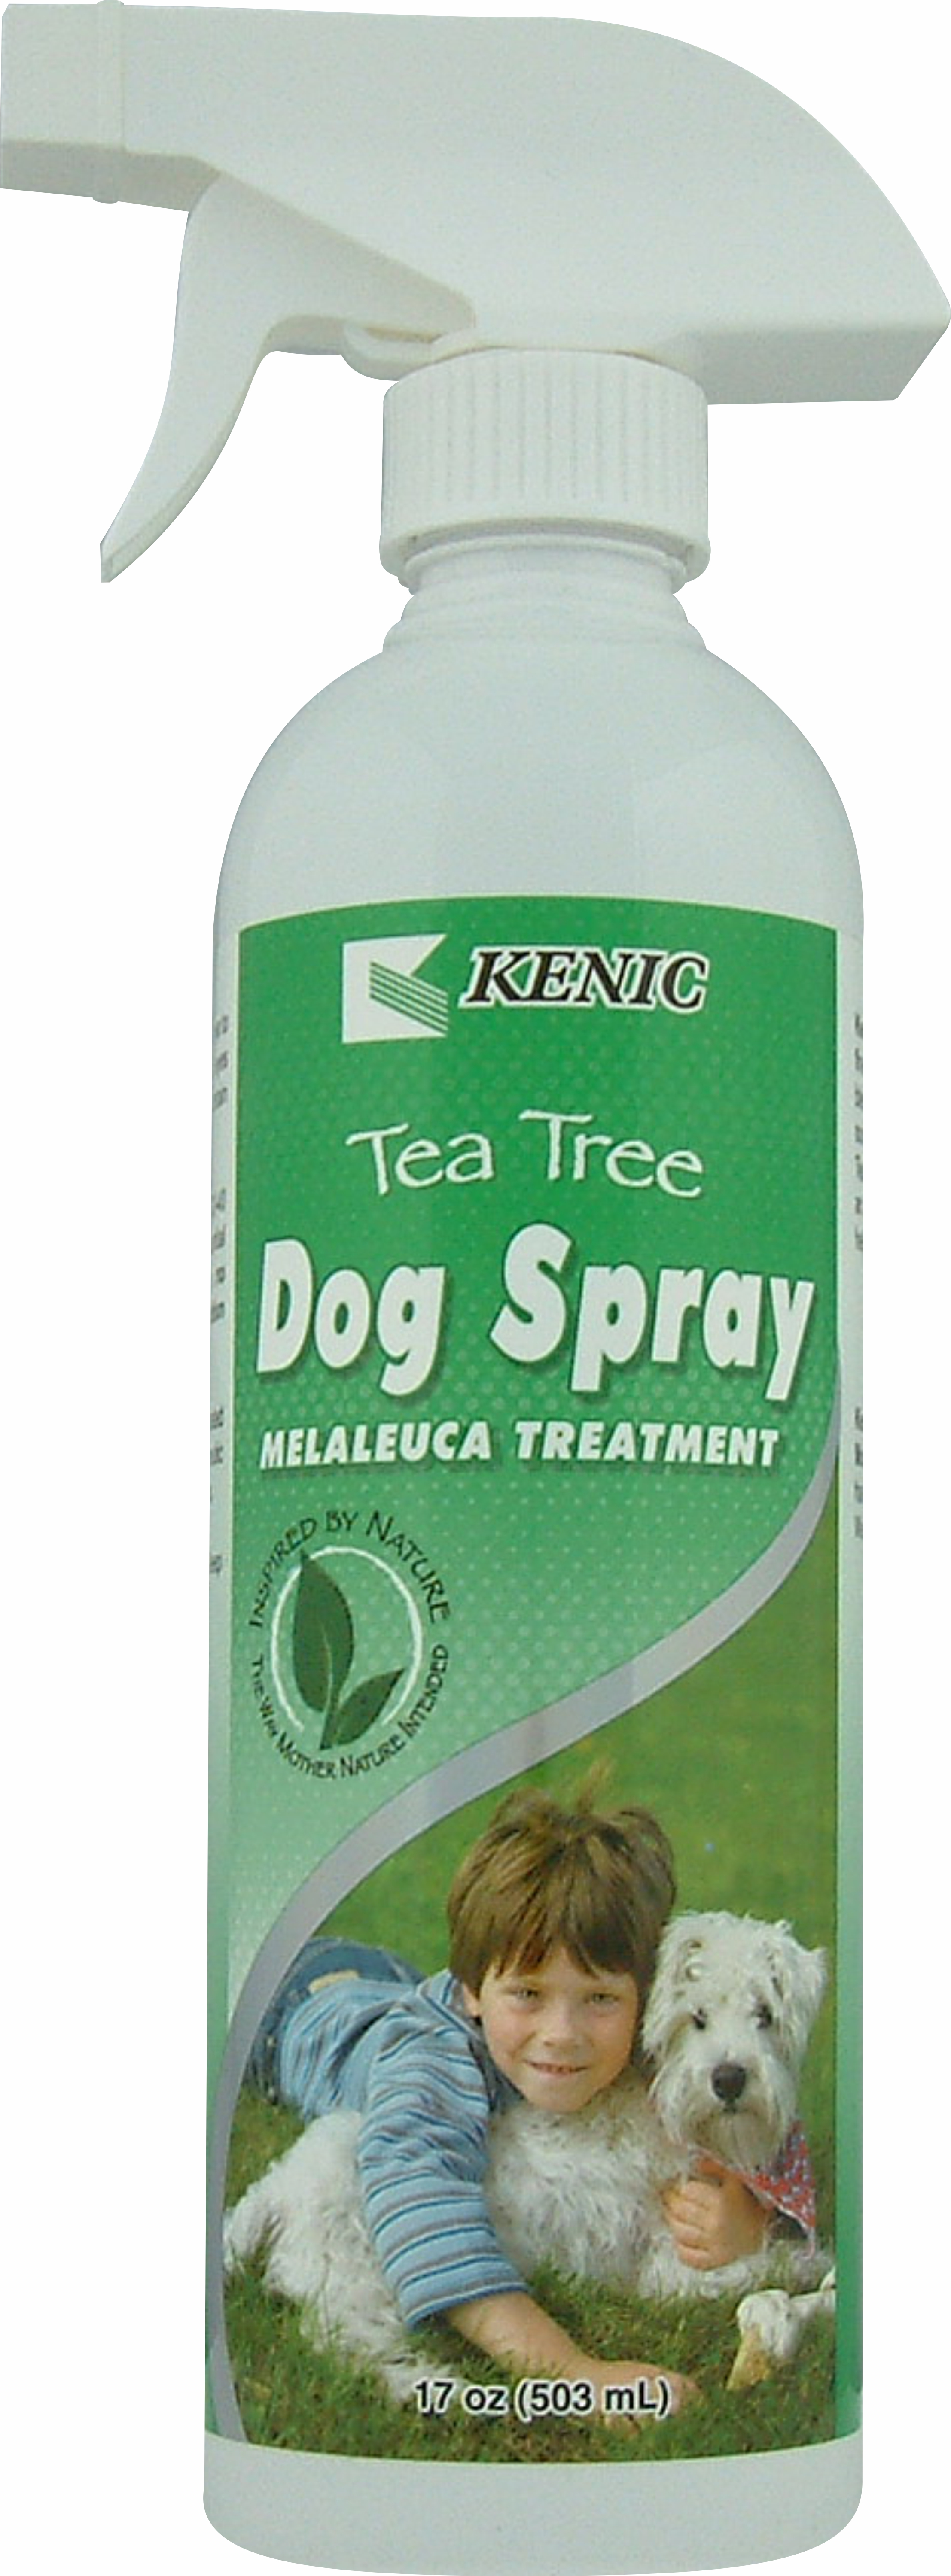 What Can You Use On Dogs For A Antiseptic